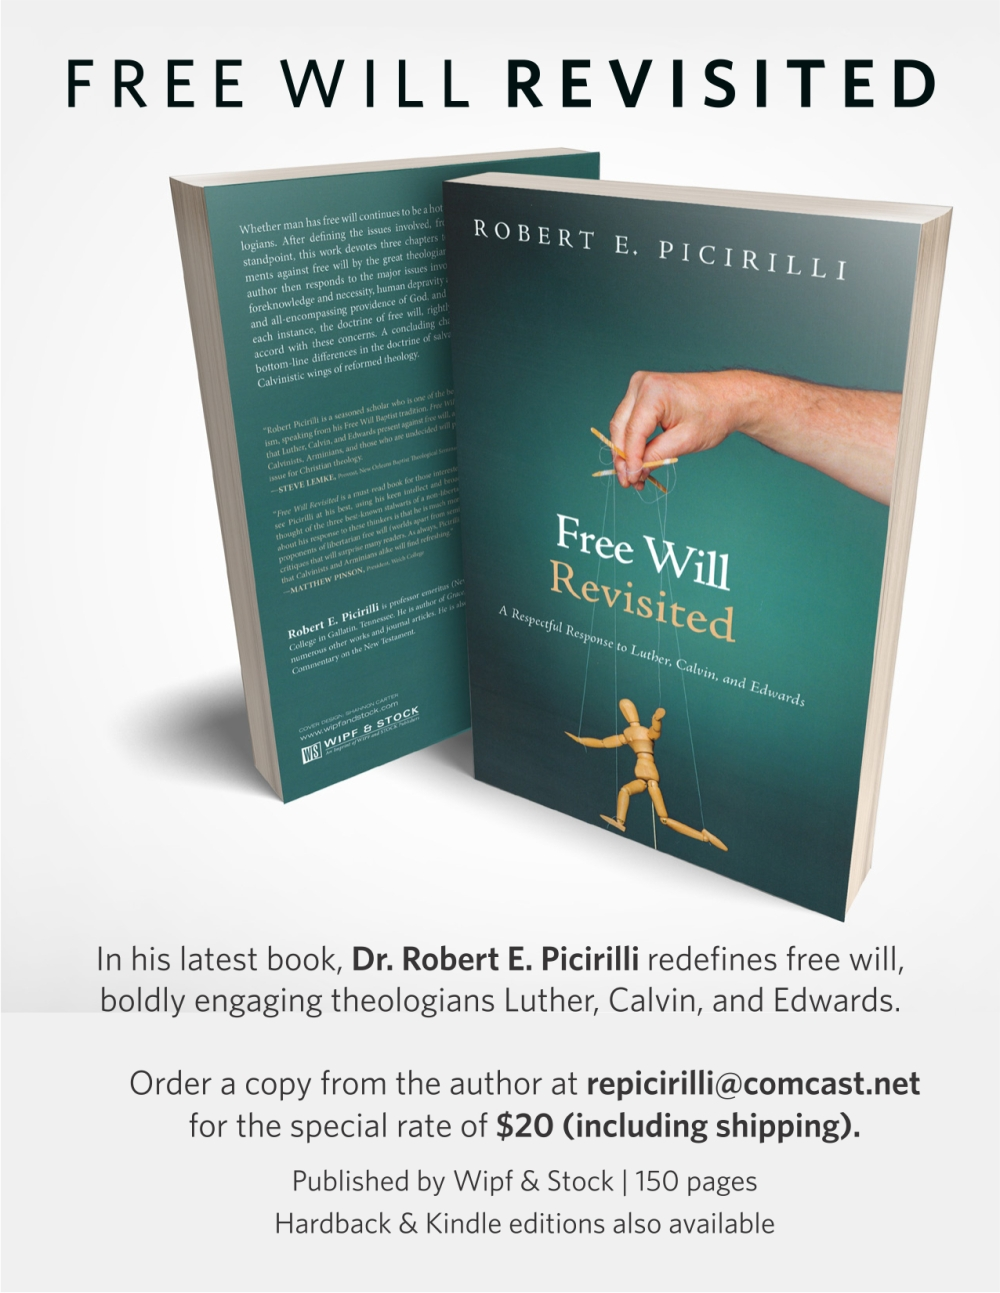 free will book ad